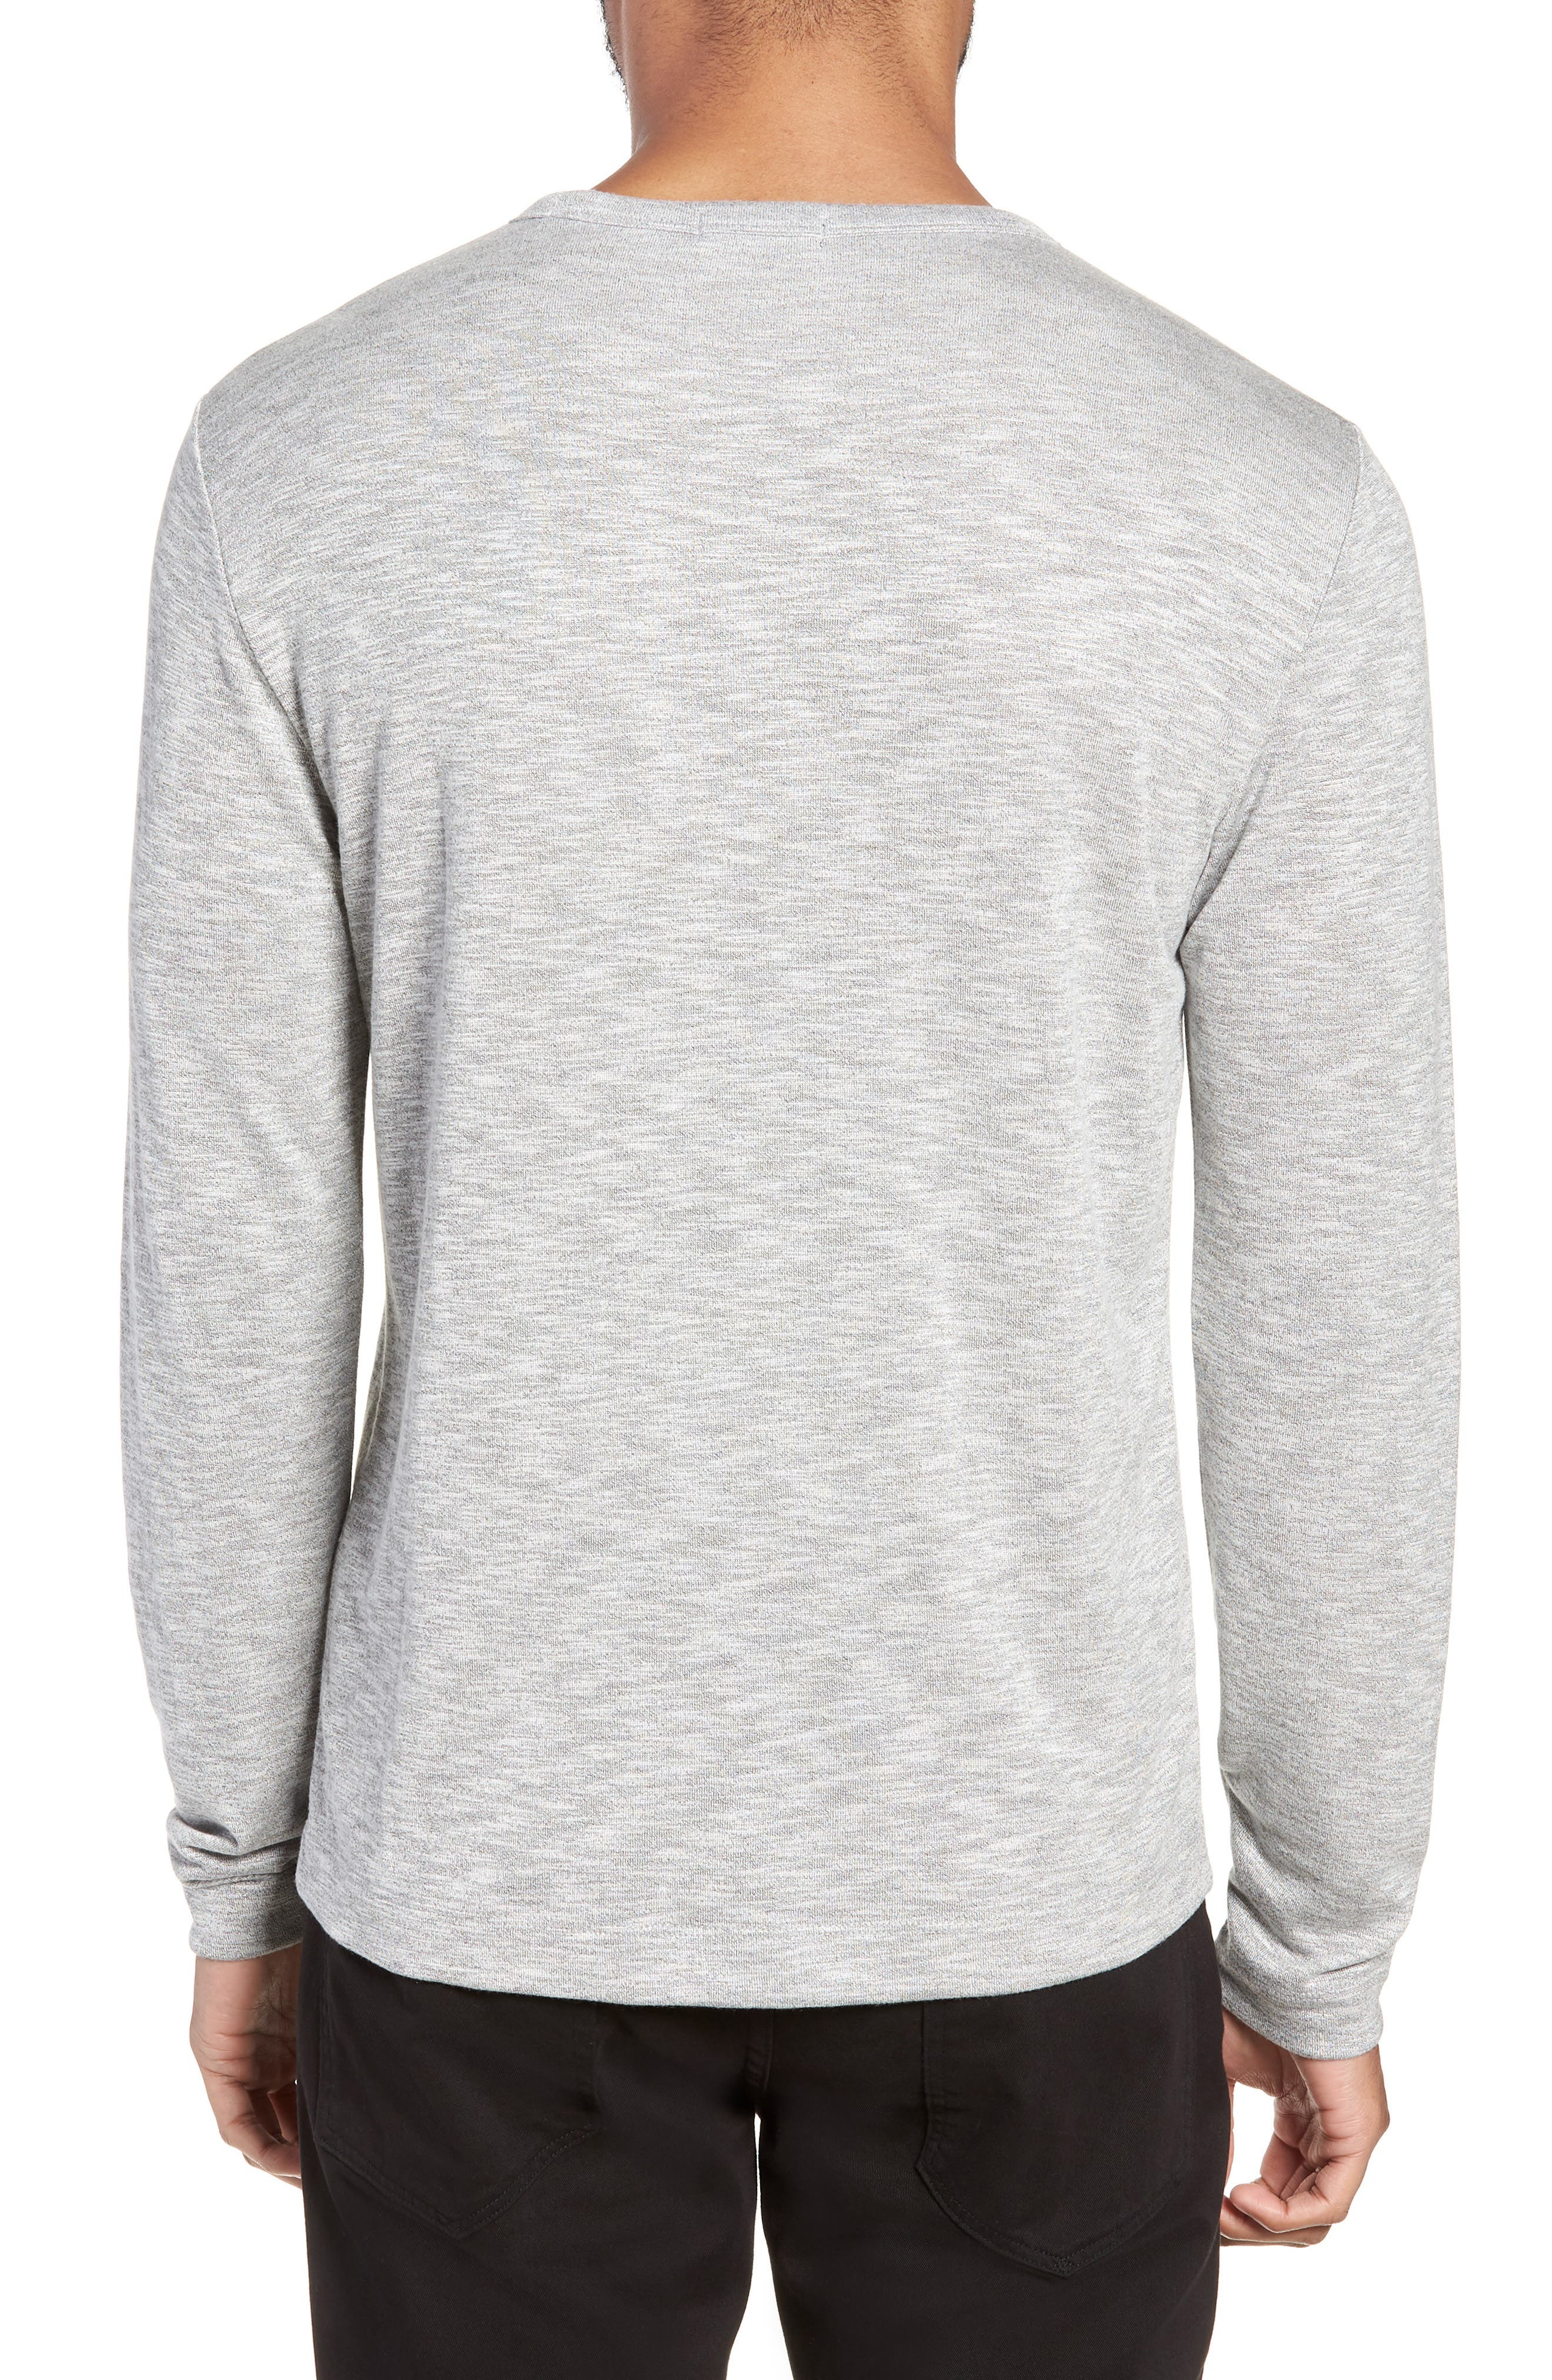 Gaskell Regular Fit Long Sleeve T-Shirt,                             Alternate thumbnail 2, color,                             GREY MULTI